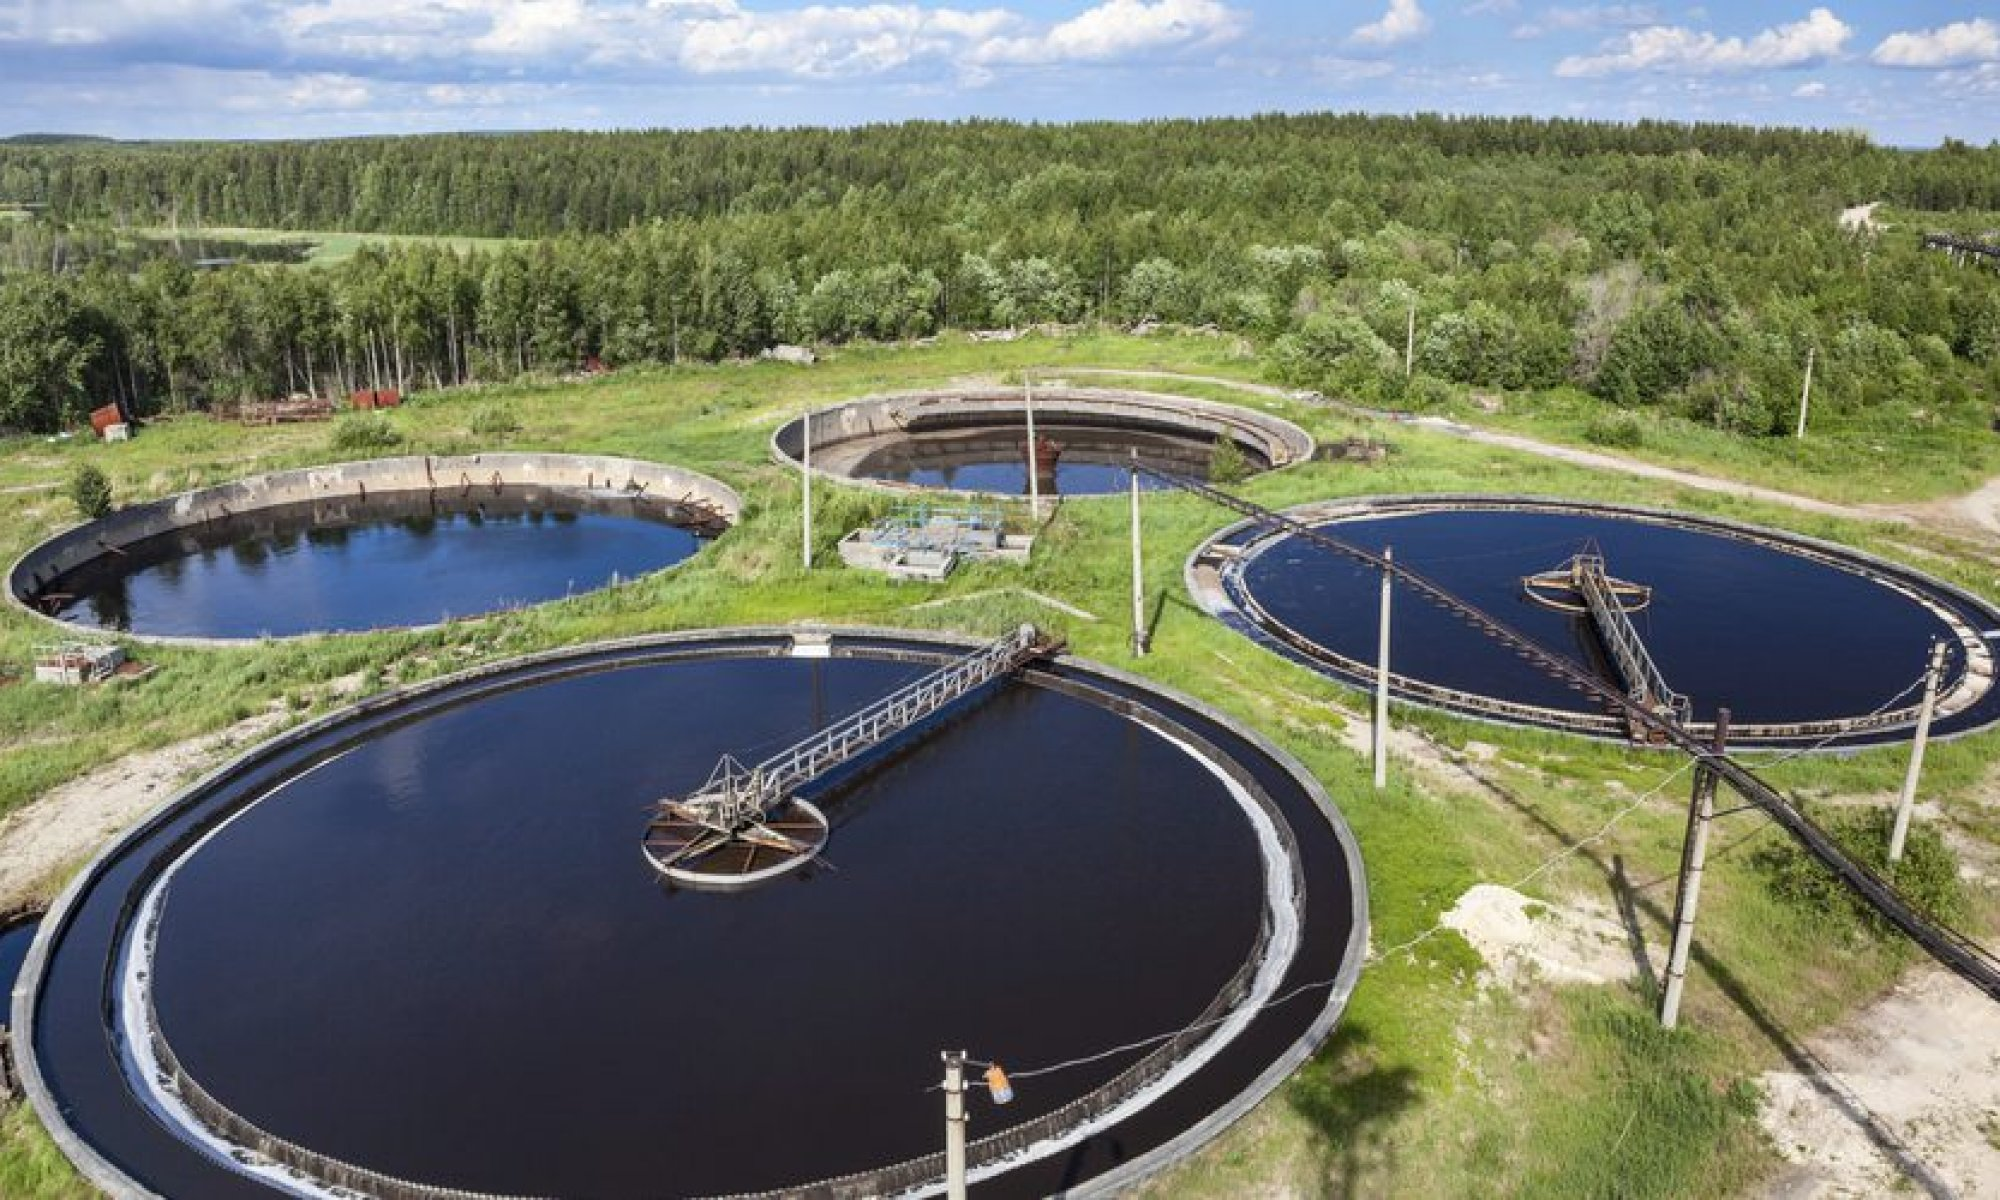 TER-ICB-01: Reconstruction of wastewater treatment plant in Ternopil